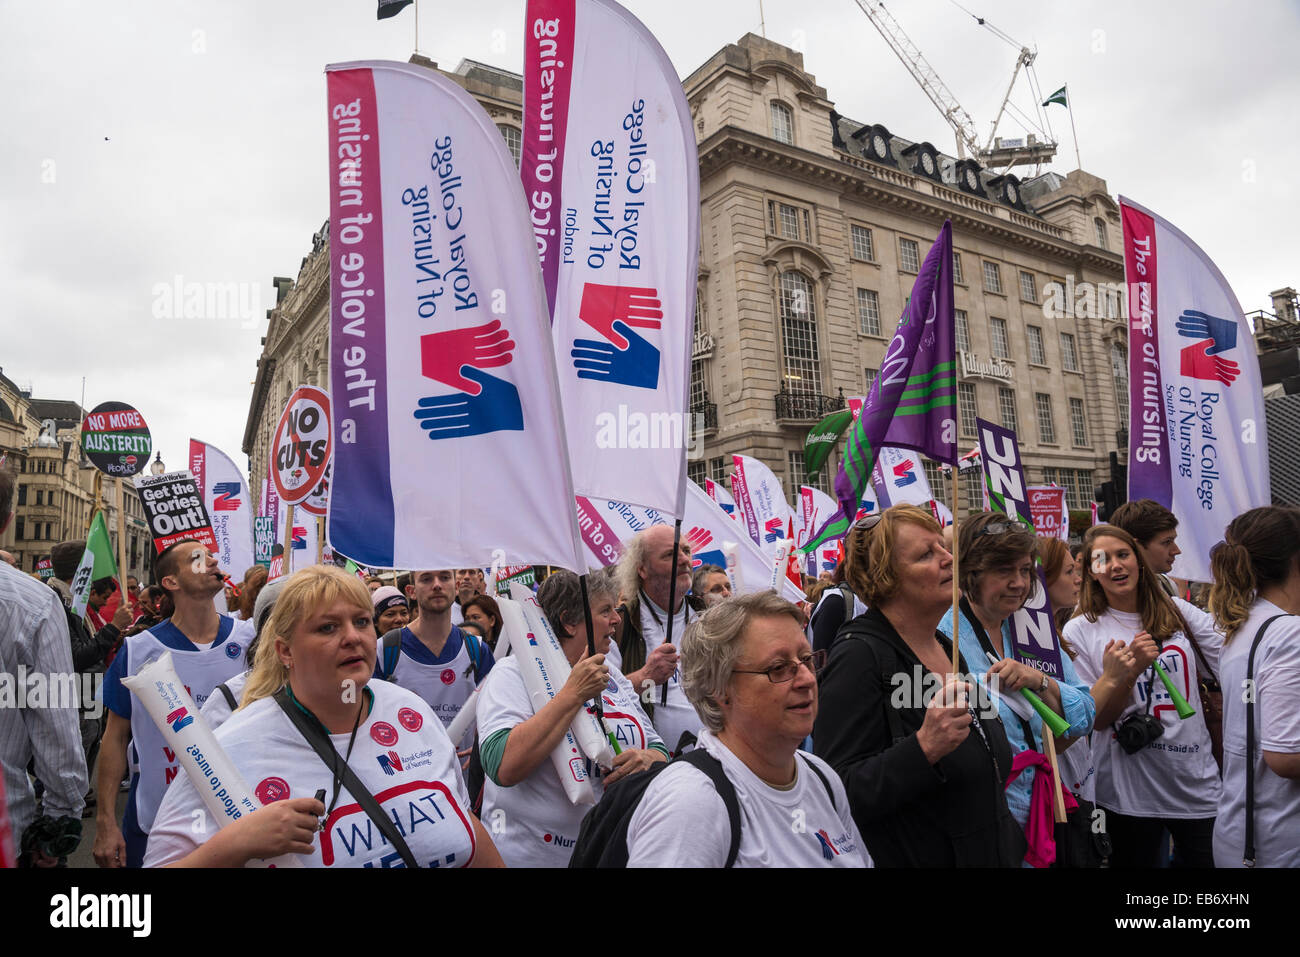 Britain Needs a Pay Rise march, Royal College of Nursing, London, 18 October 2014, UK - Stock Image